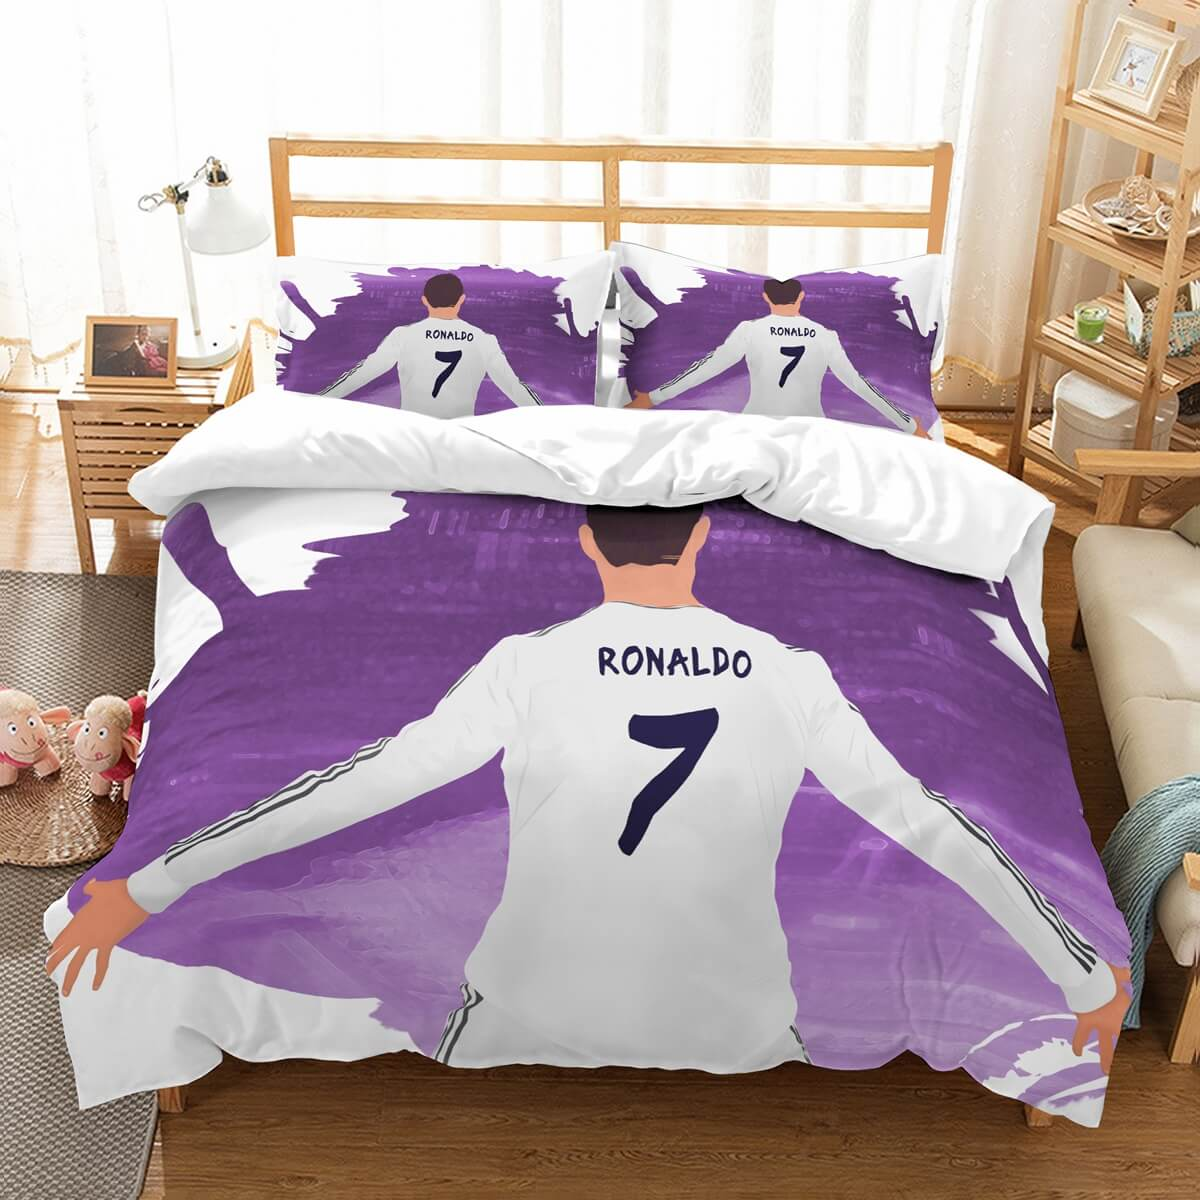 3D Customize Cristiano Ronaldo Bedding Set Duvet Cover Set Bedroom Set Bedlinen